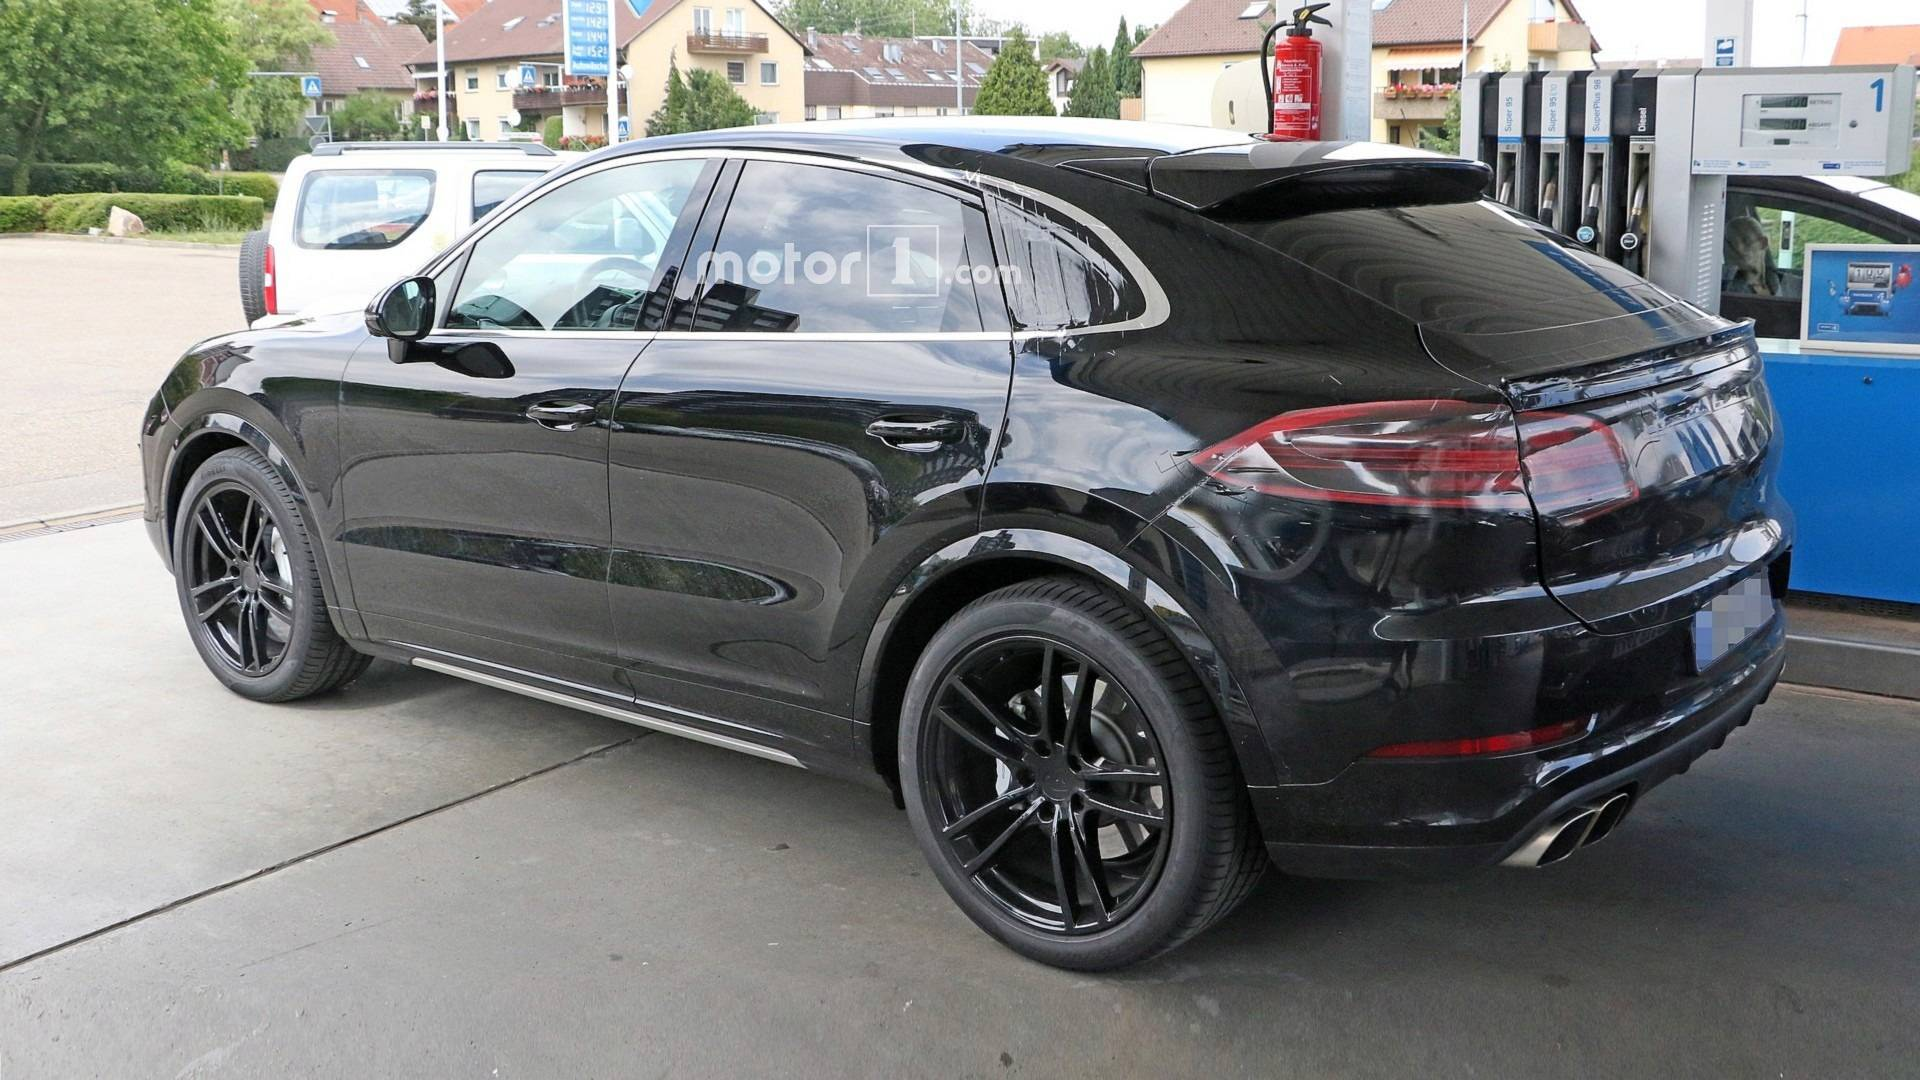 2020 Porsche Cayenne Coupe Price, Redesign >> 2020 Porsche Cayenne Coupe Spied Inside And Out At Gas Station